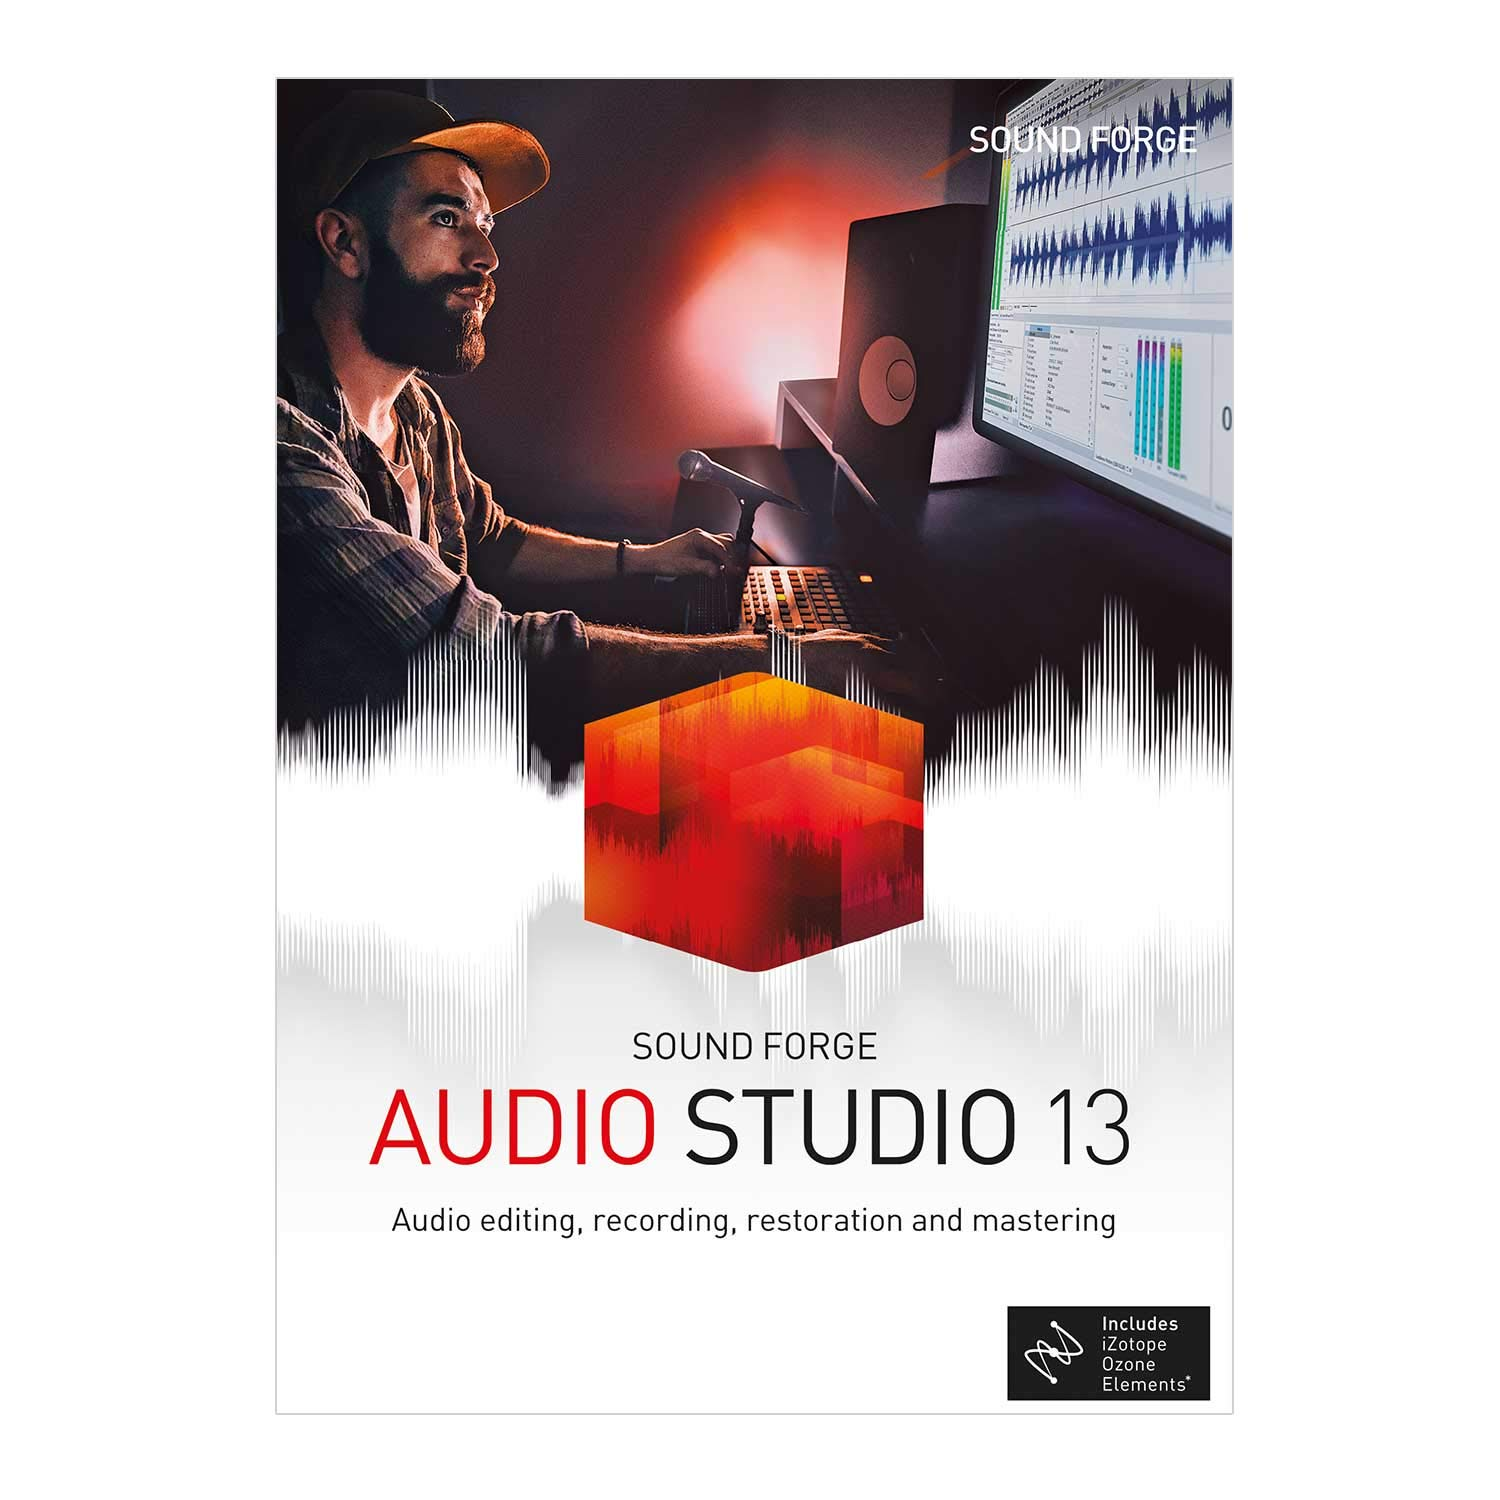 SOUND FORGE Audio Studio - Version 13- audio editing, recording, restoration and mastering in one. [PC Download] by SOUNDFORGE